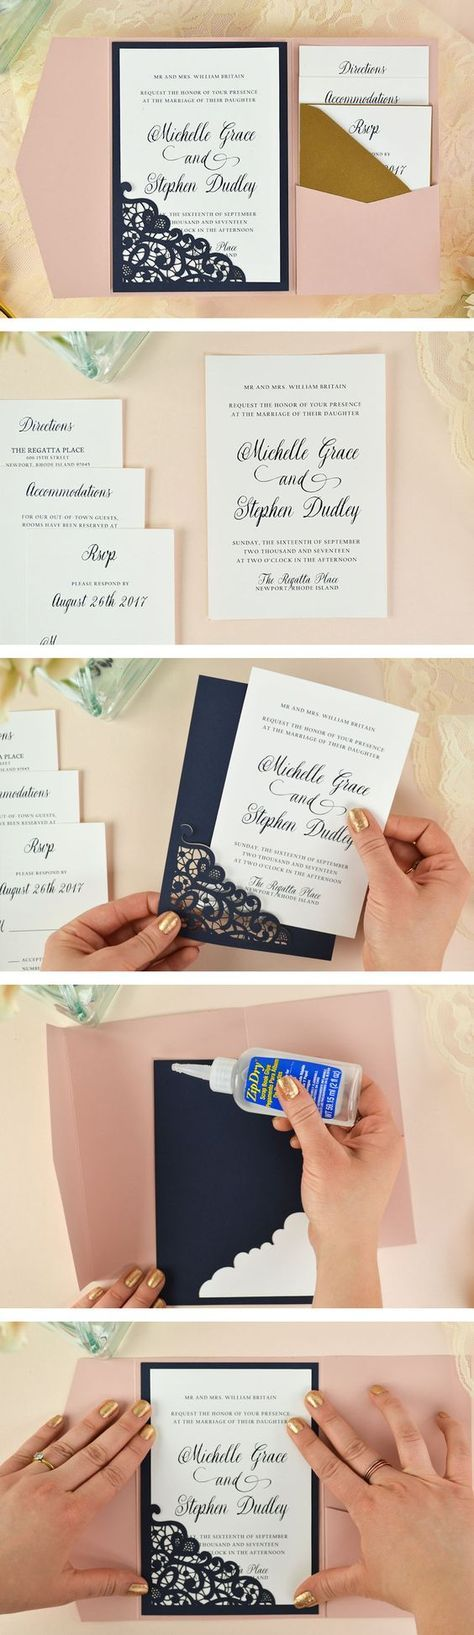 diy wedding invitations for second marriage%0A How to DIY Laser Wedding Invitations with Slidein Cards